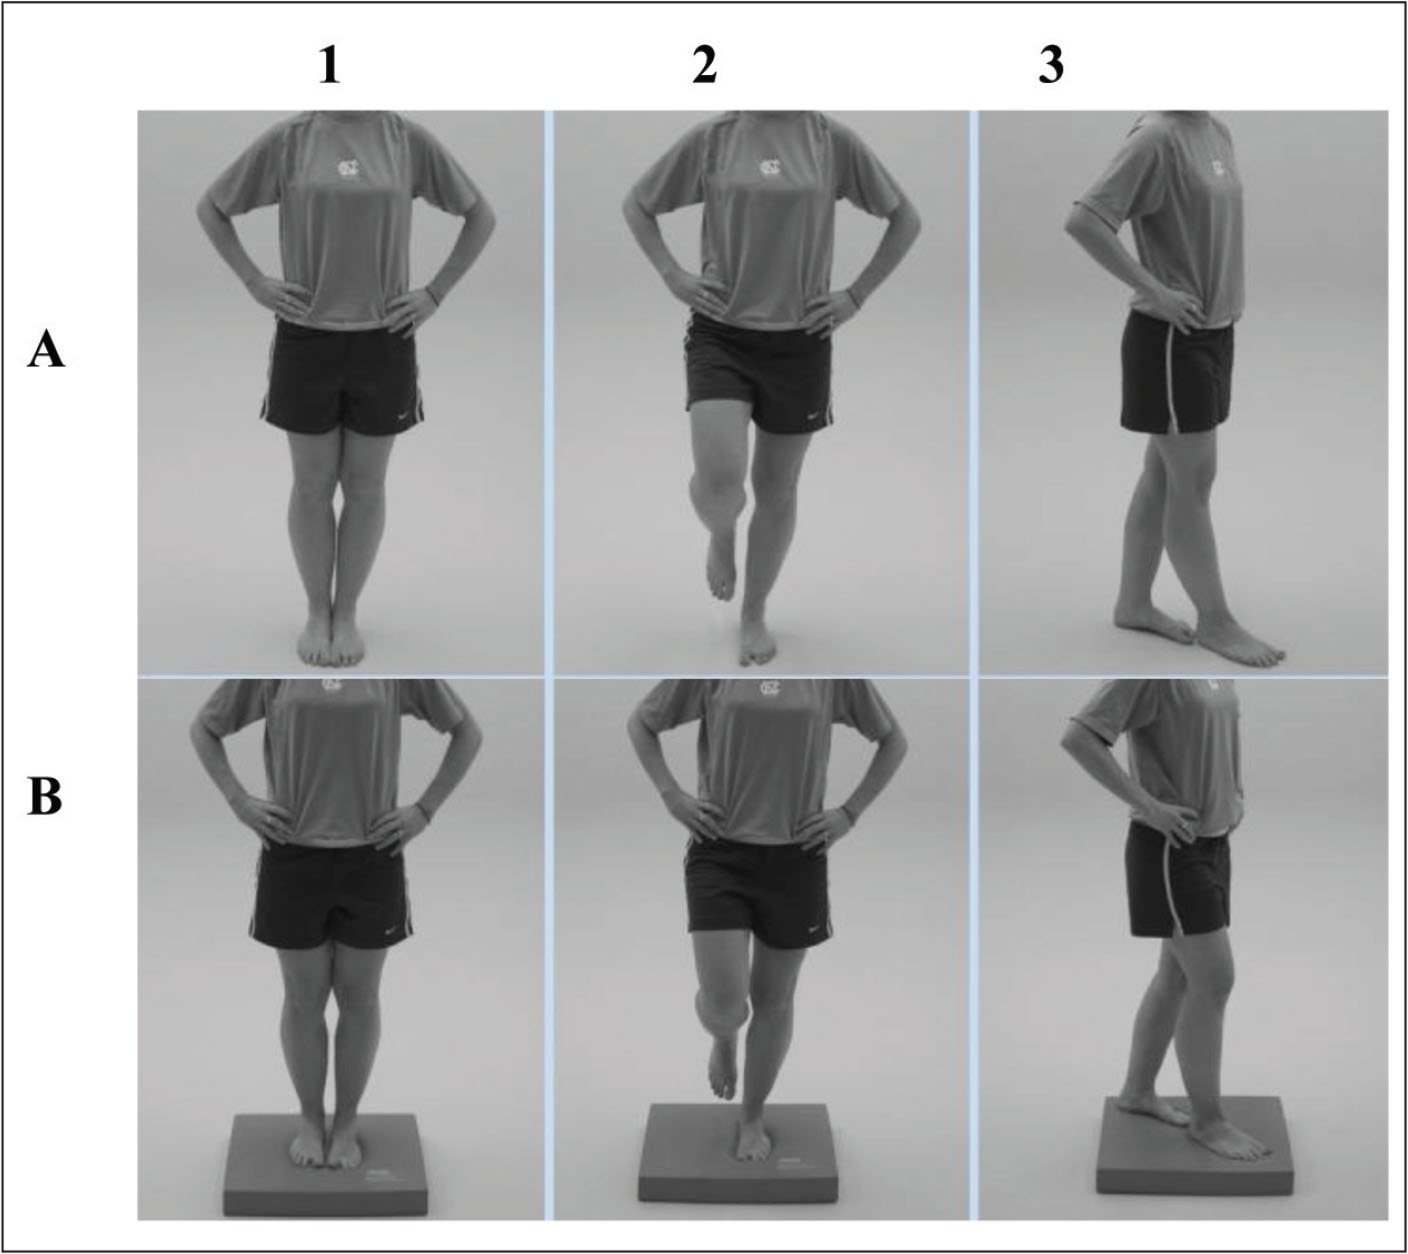 Balance Error Scoring System. Assessing postural stability with eyes closed and hands on hips in the following positions for 20 seconds in each position: (A) flat surface; (B) 10-cm foam block; (1) double-leg stance; (2) single-leg stance on nondominant foot; (3) tandem leg stance with dominant foot forward. Reprinted with permission from Bell et al.15